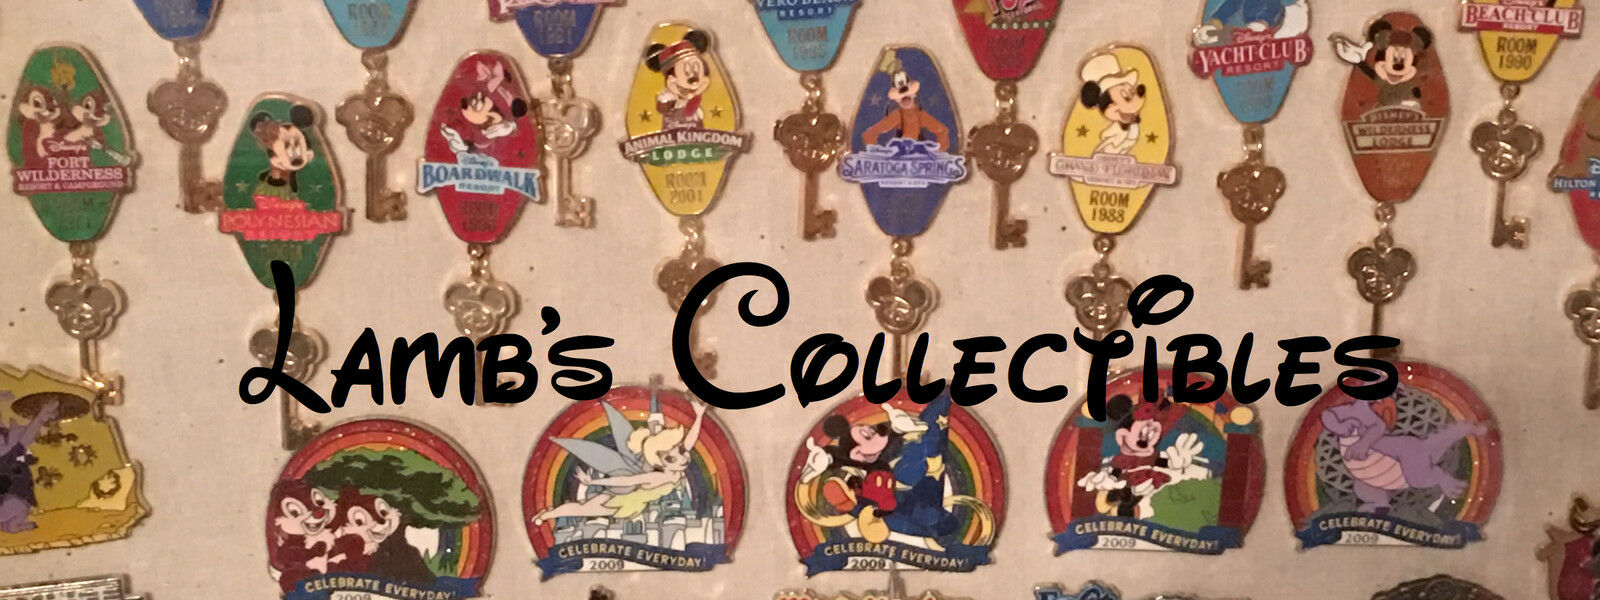 Lamb's Collectibles